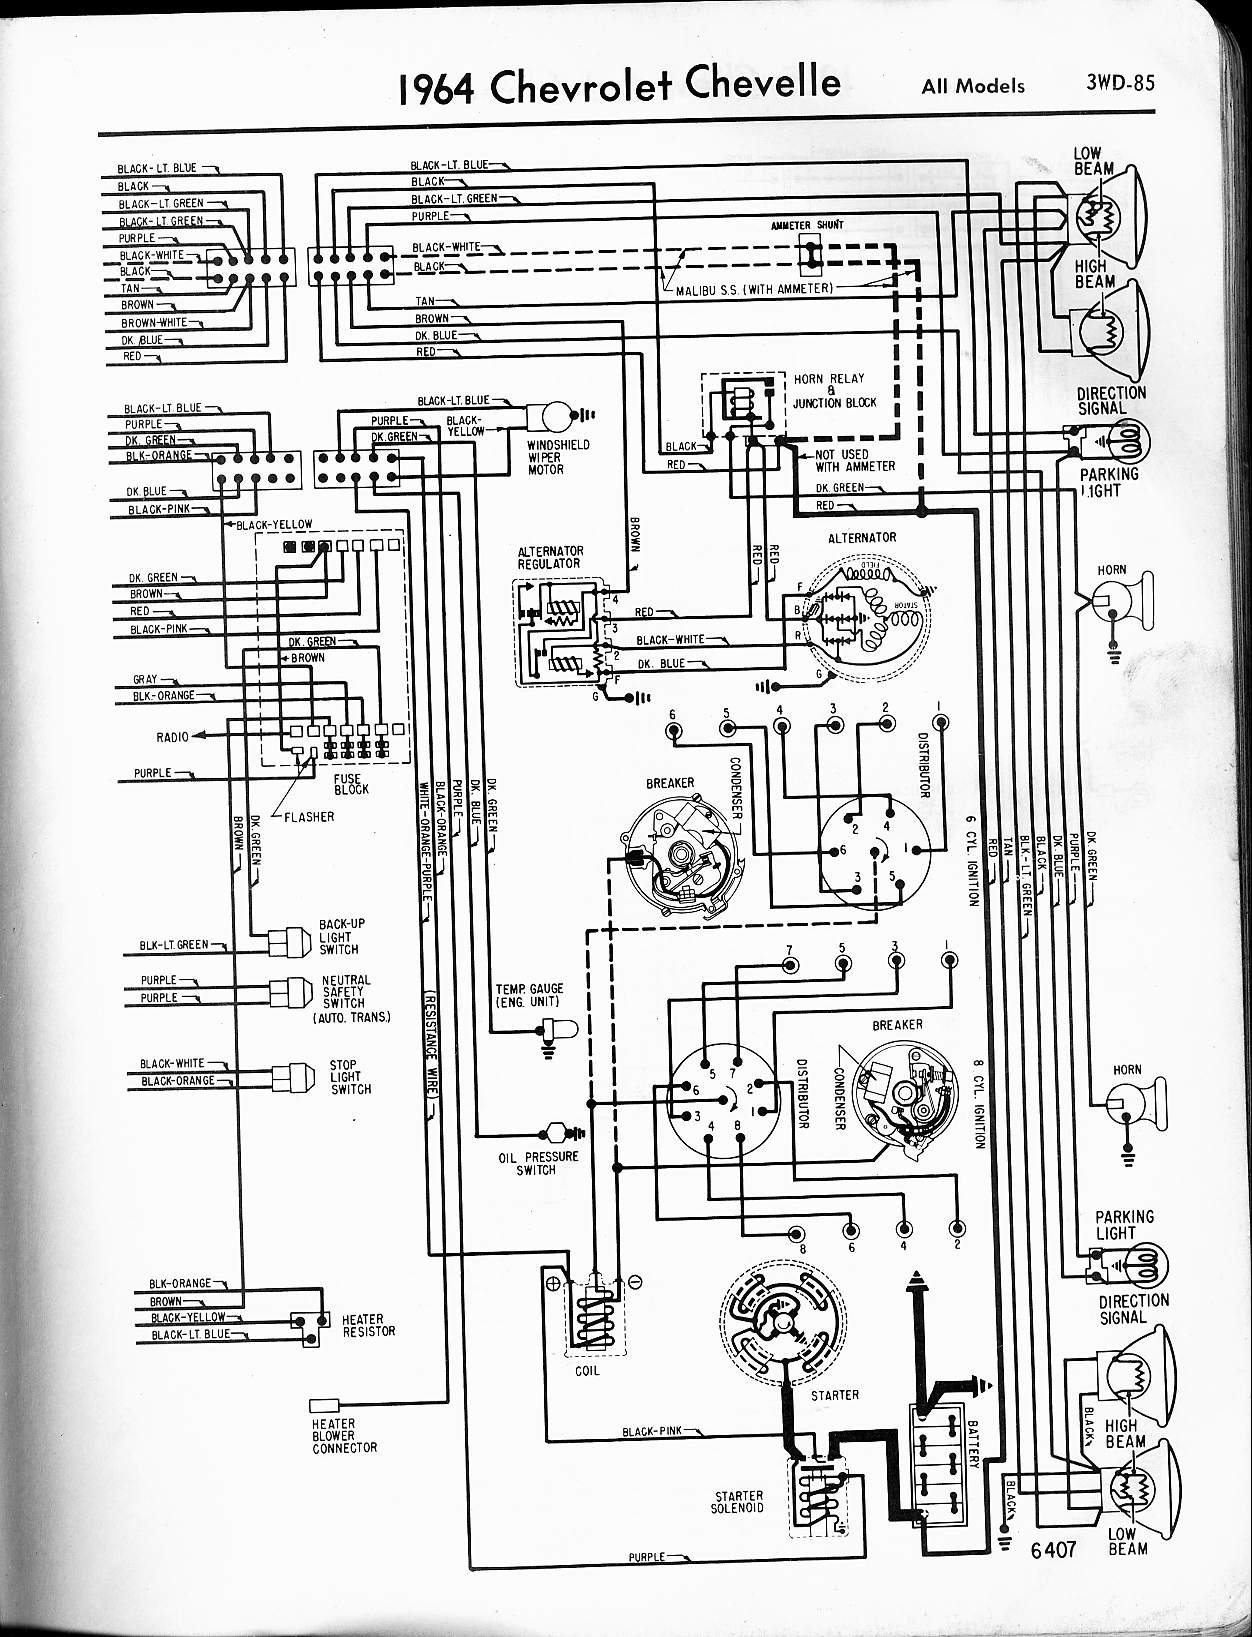 MWireChev64_3WD 085 1969 chevelle wiring harness 1968 chevy chevelle wiring diagram 1972 chevelle wiring harness at webbmarketing.co